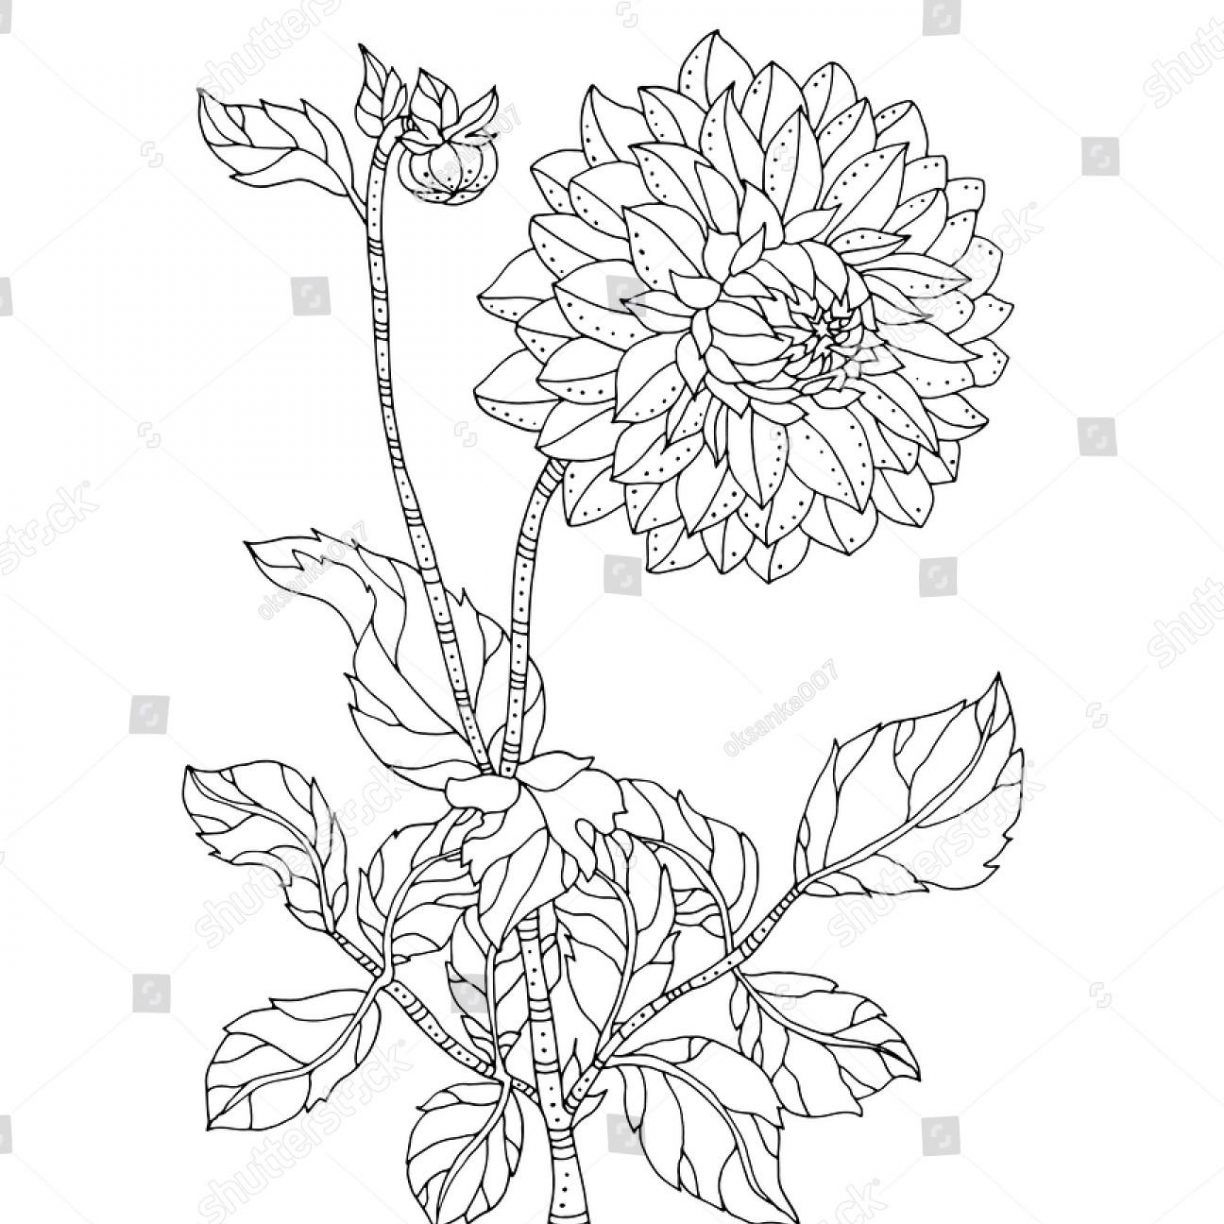 Chrysanthemums Drawing at GetDrawings